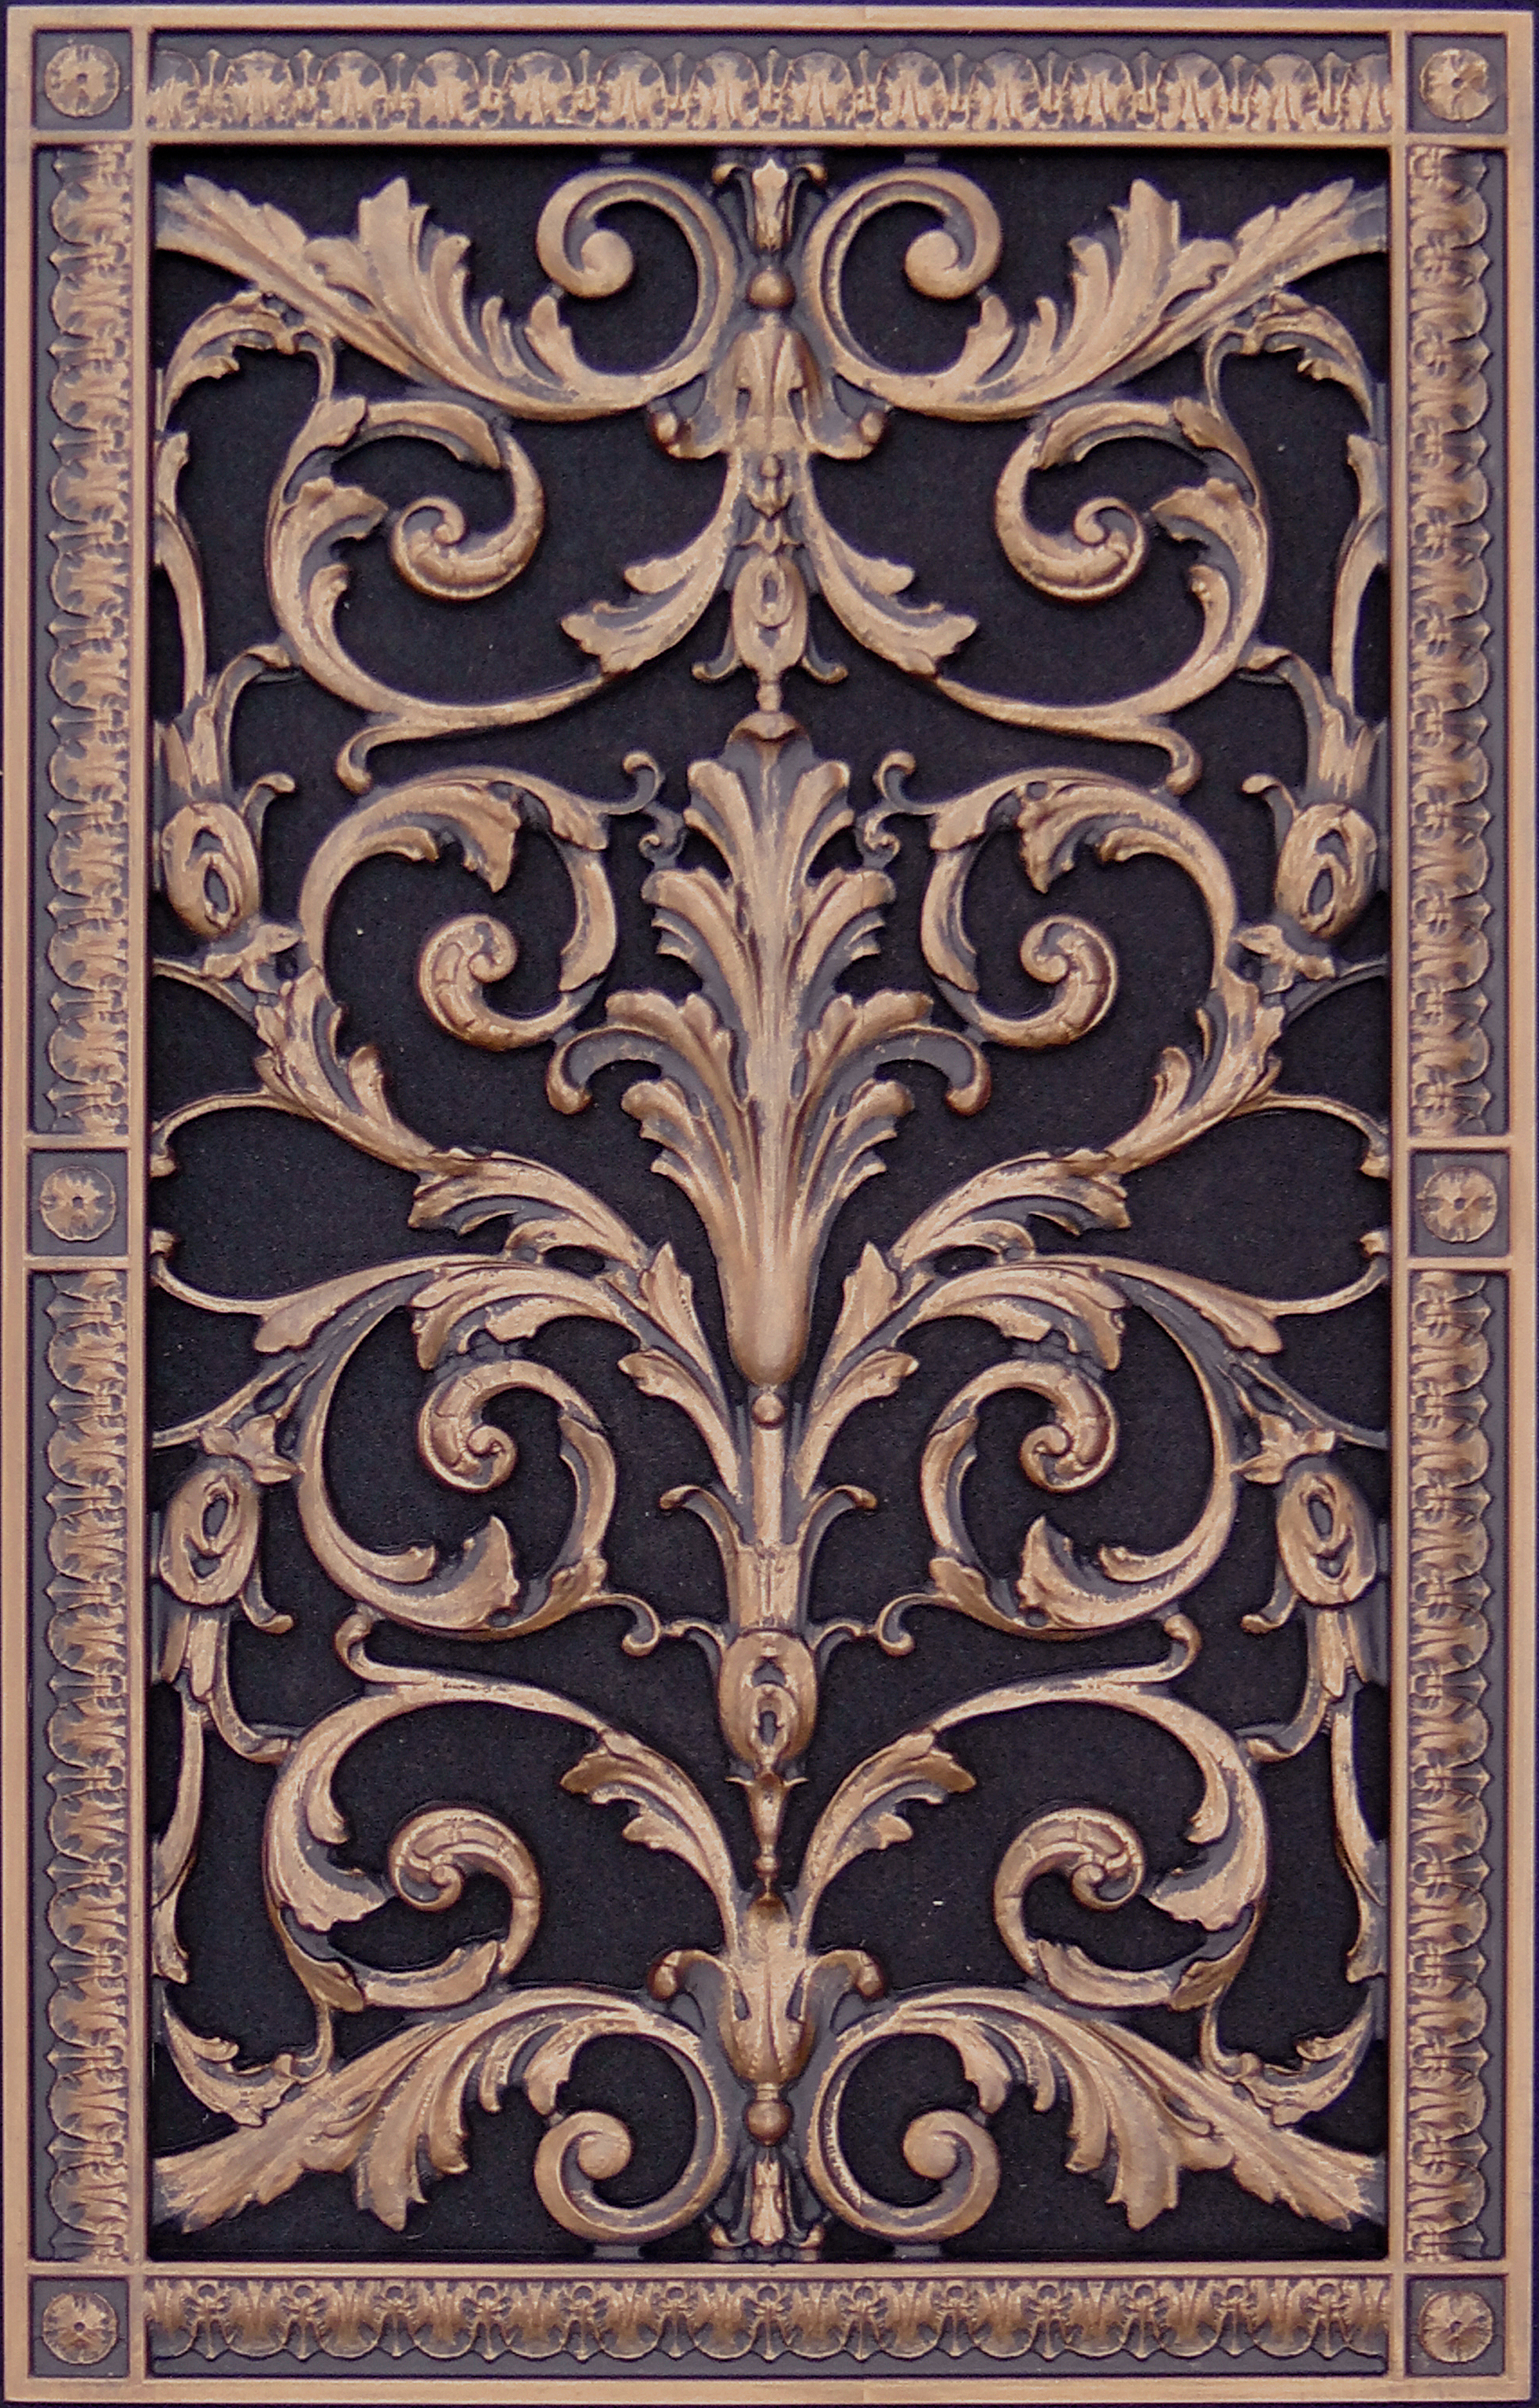 decorative vent cover in Louis XIV style in rubbed bronze